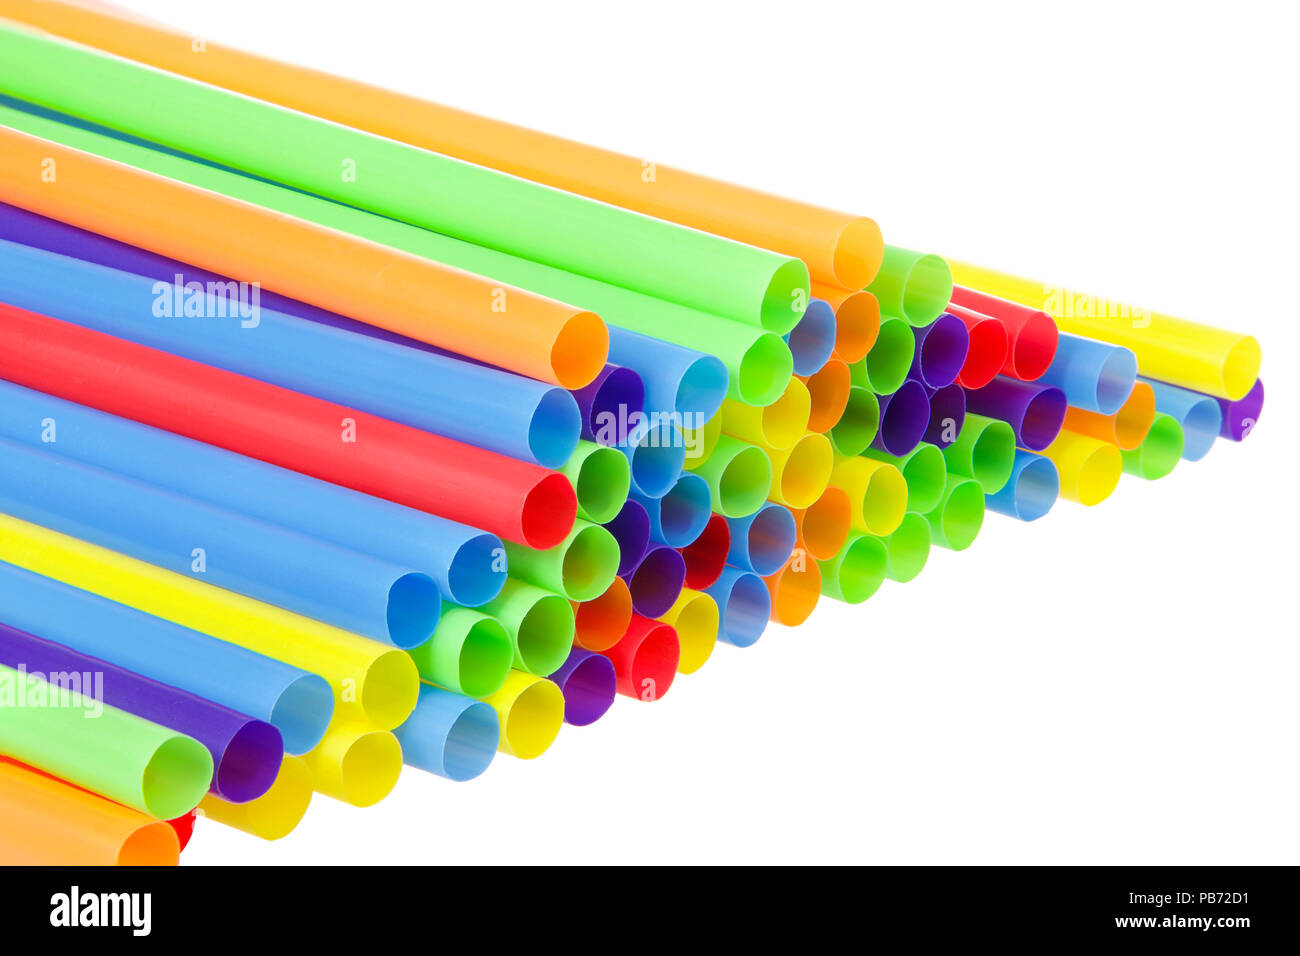 many colorful plastic straws with opening forward isolated on white background. San Francisco's board of supervisors voted unanimously to join cities  - Stock Image